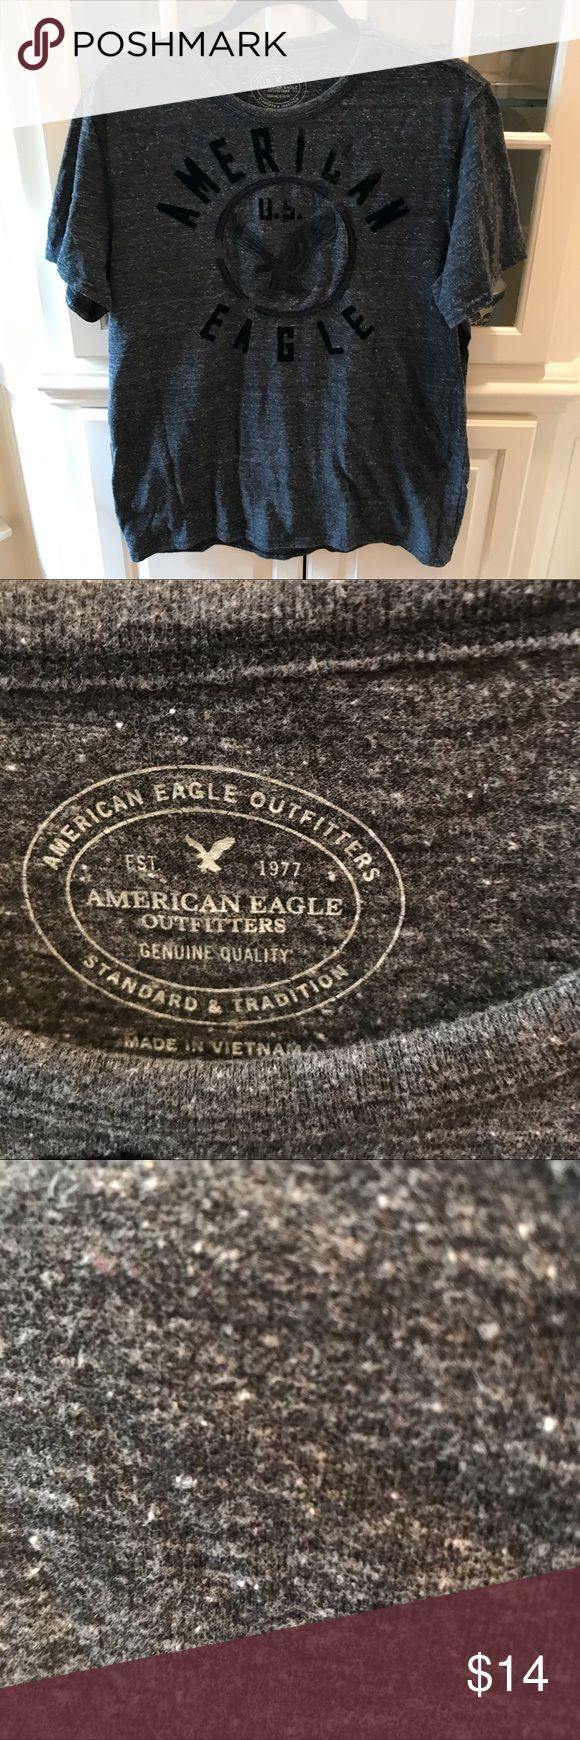 SALE😘😘American Eagles men's T shirt.  Size large Great T Shirt dark gray with some white speckled in. Athletic fit size large. Great condition American Eagle Outfitters Shirts Tees - Short Sleeve